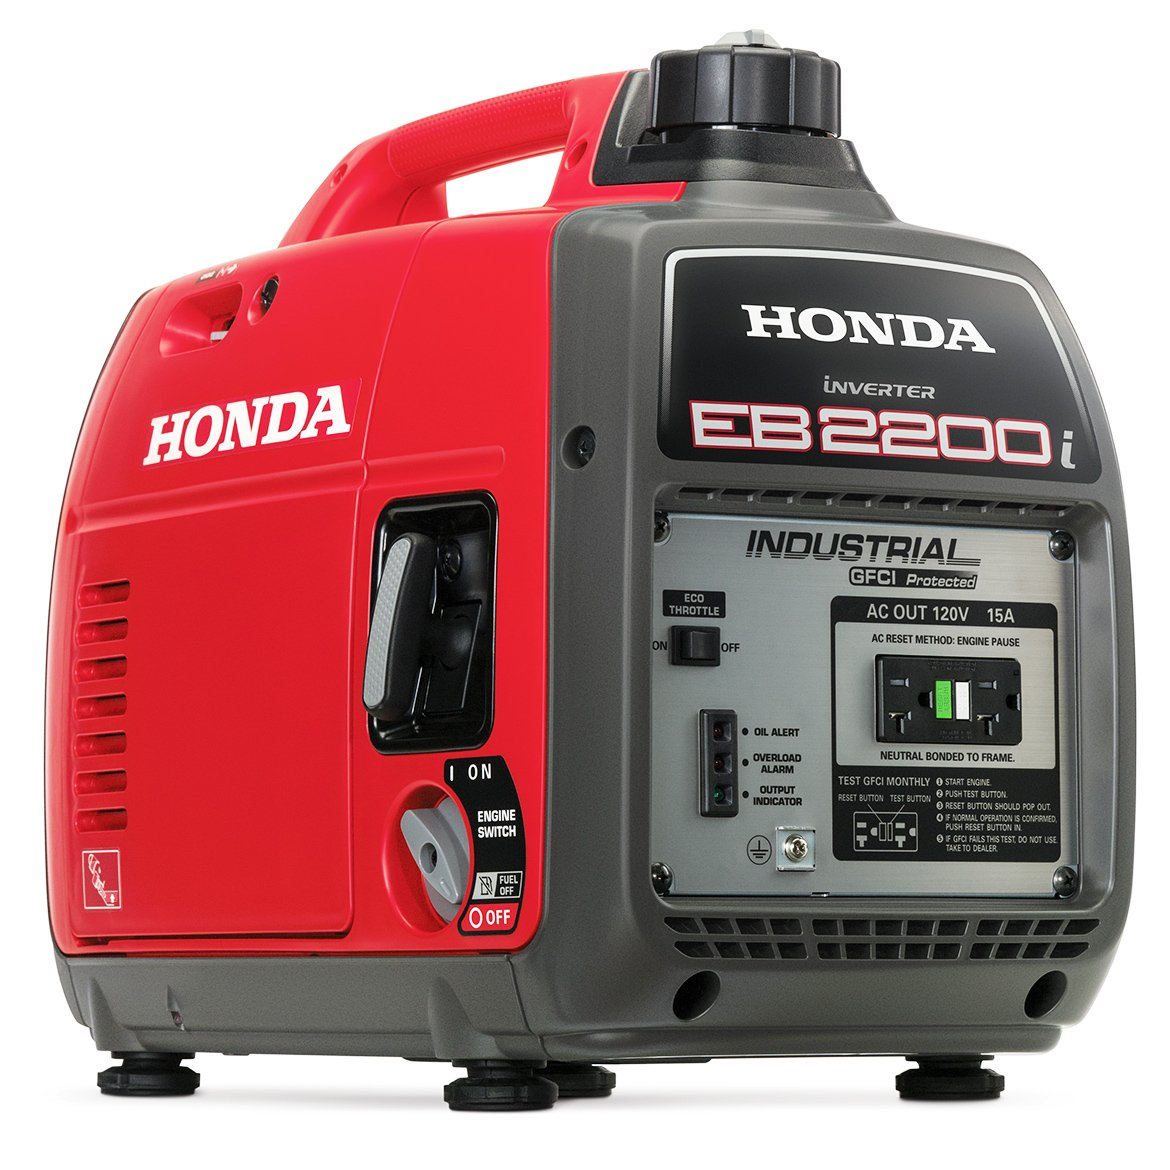 Honda 2,200 Watt Portable Inverter Generator